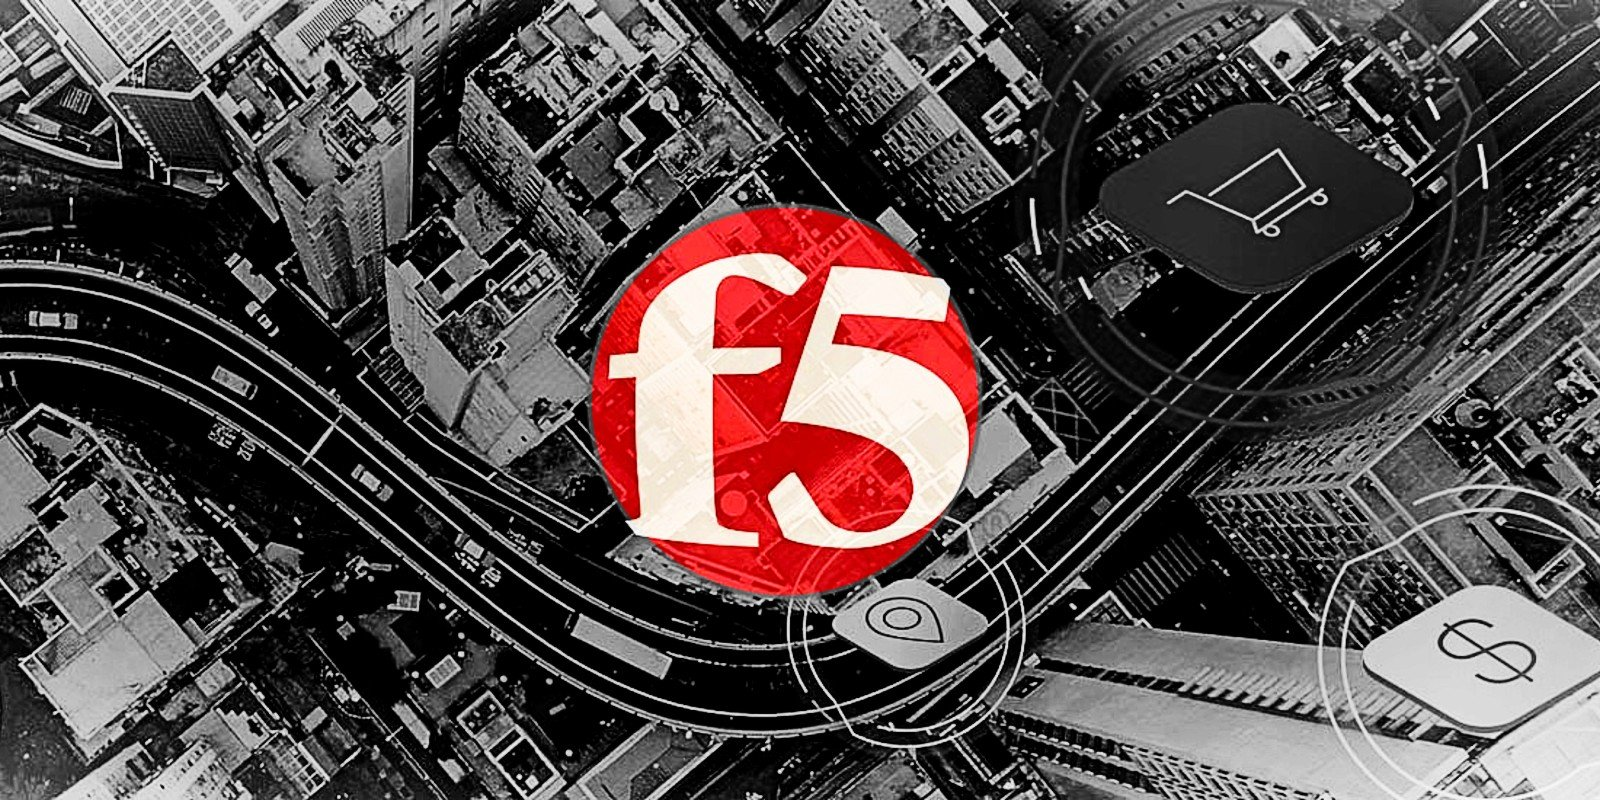 F5 urges customers to patch critical BIG-IP pre-auth RCE bug - BleepingComputer